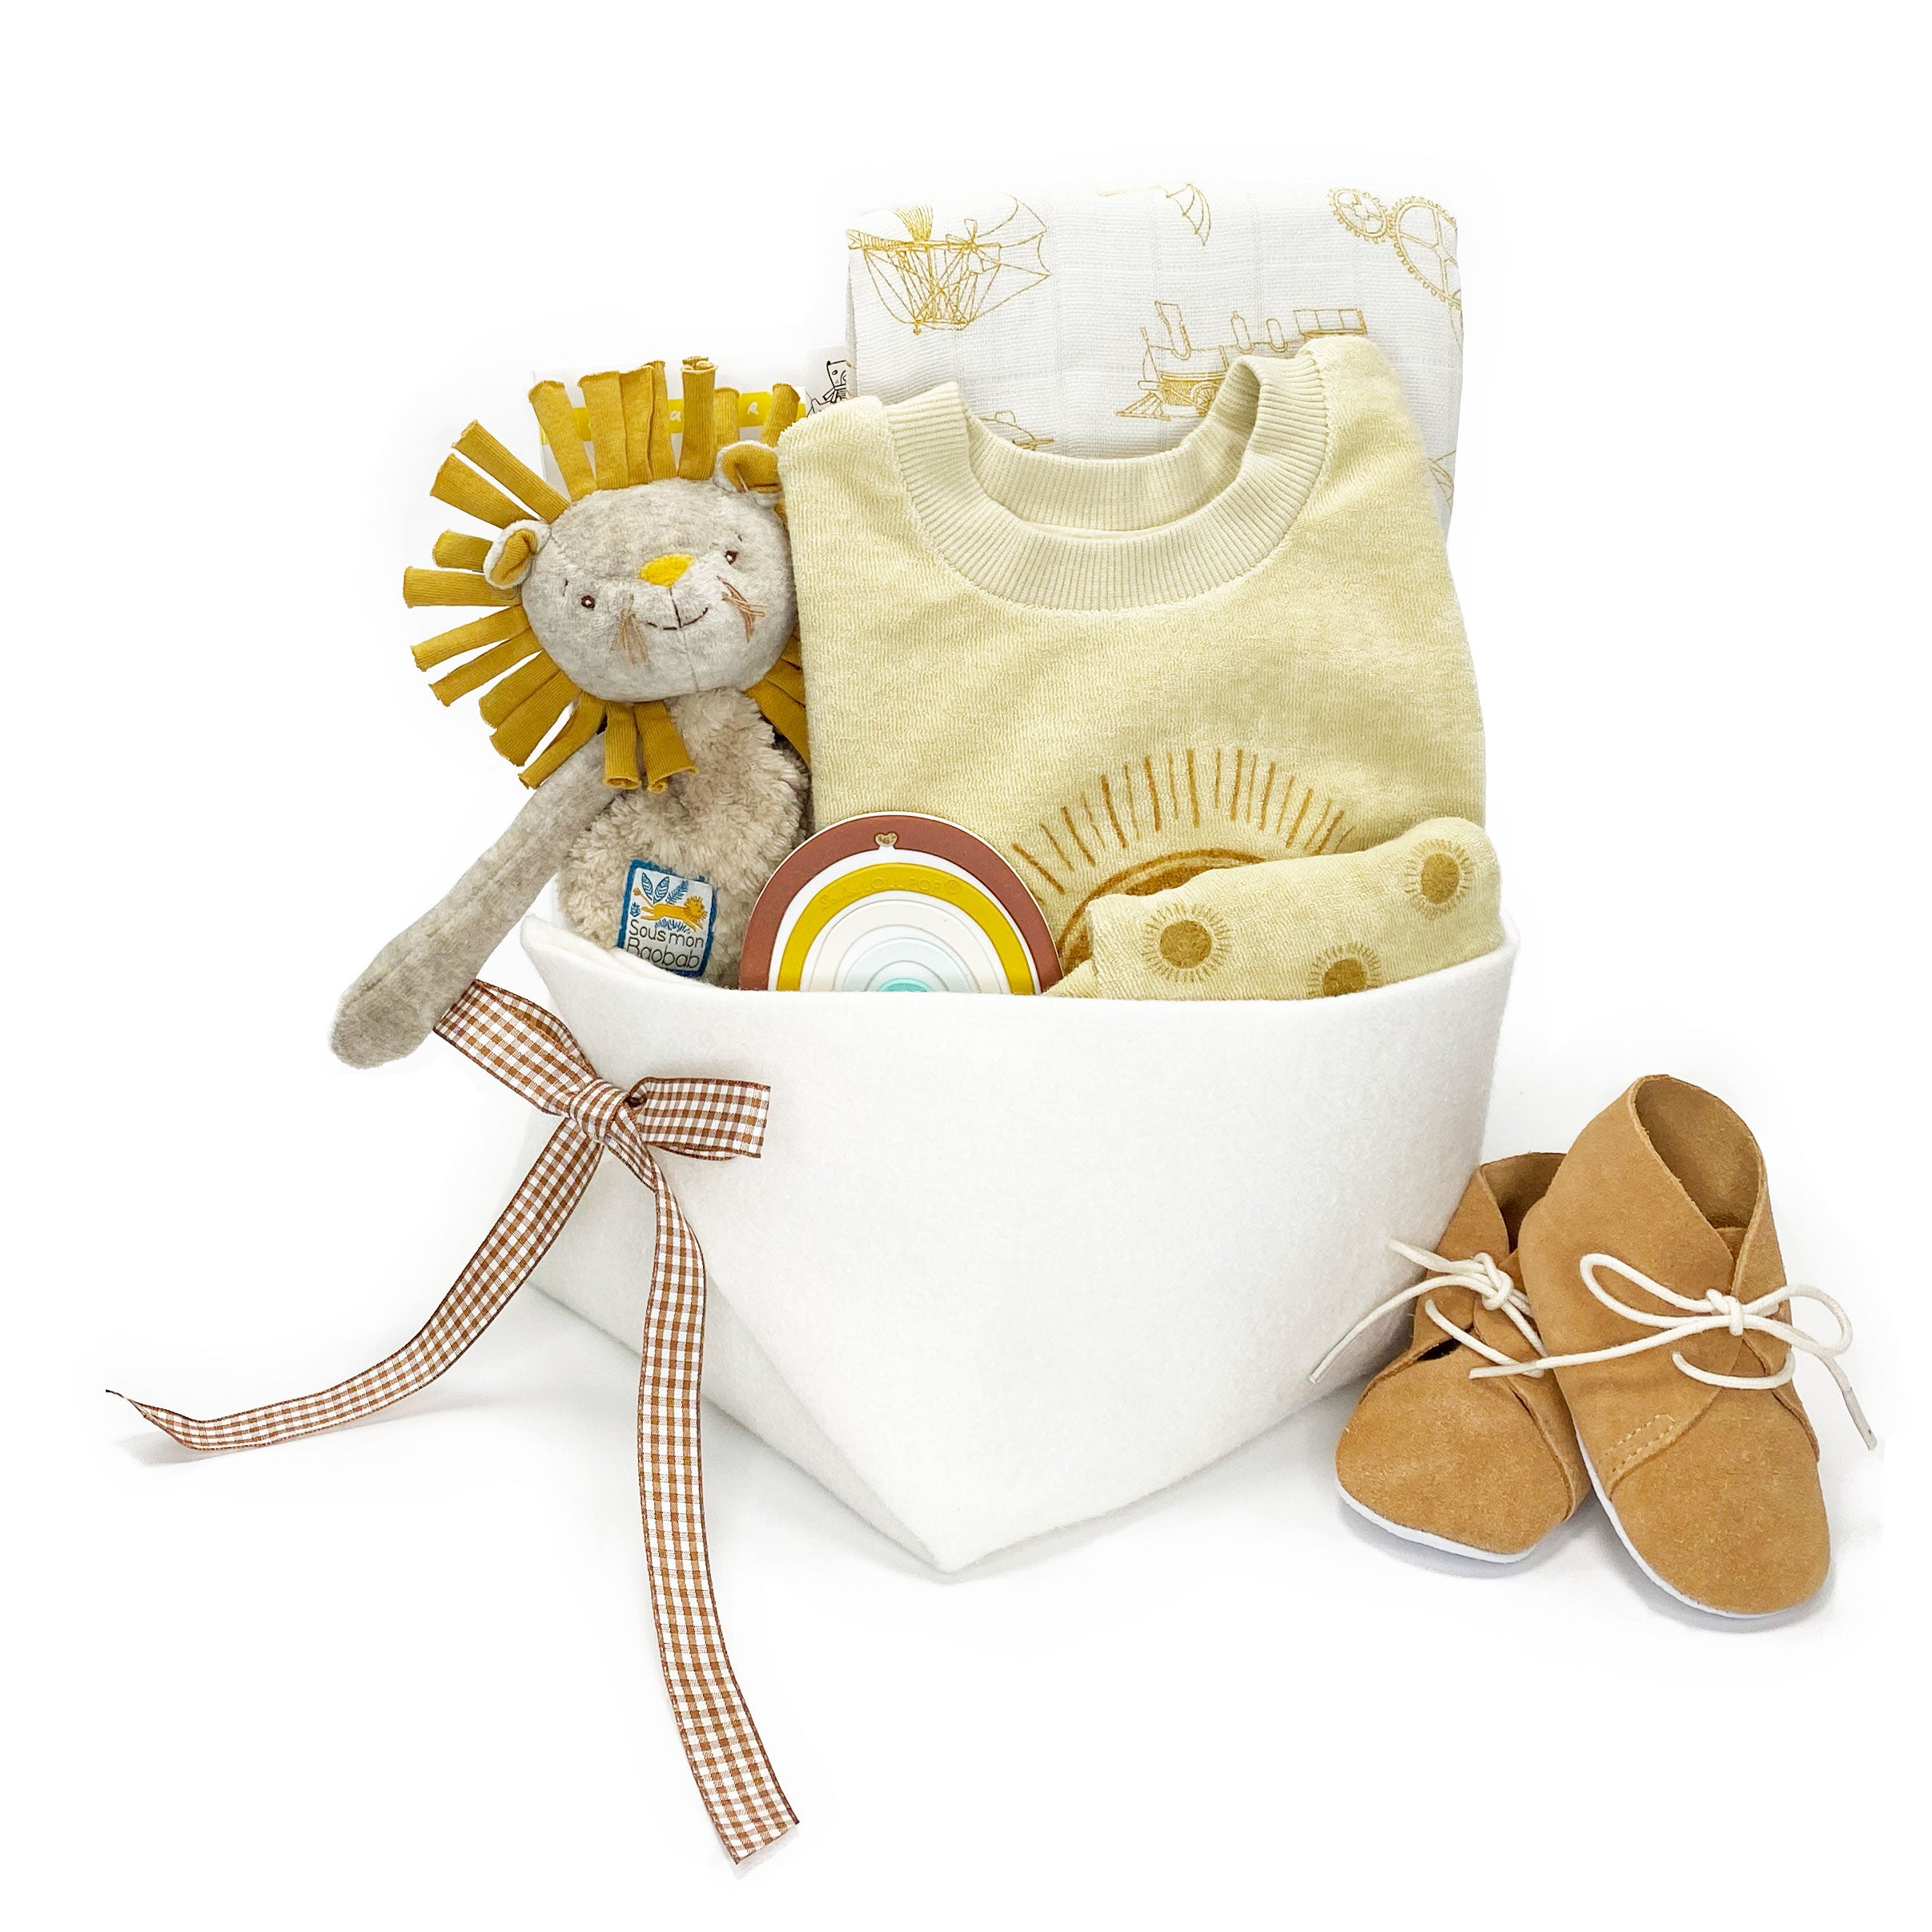 Rylee and Cru Trendy Baby Gift at Bonjour Baby Baskets - Best Corporate Baby Gifts